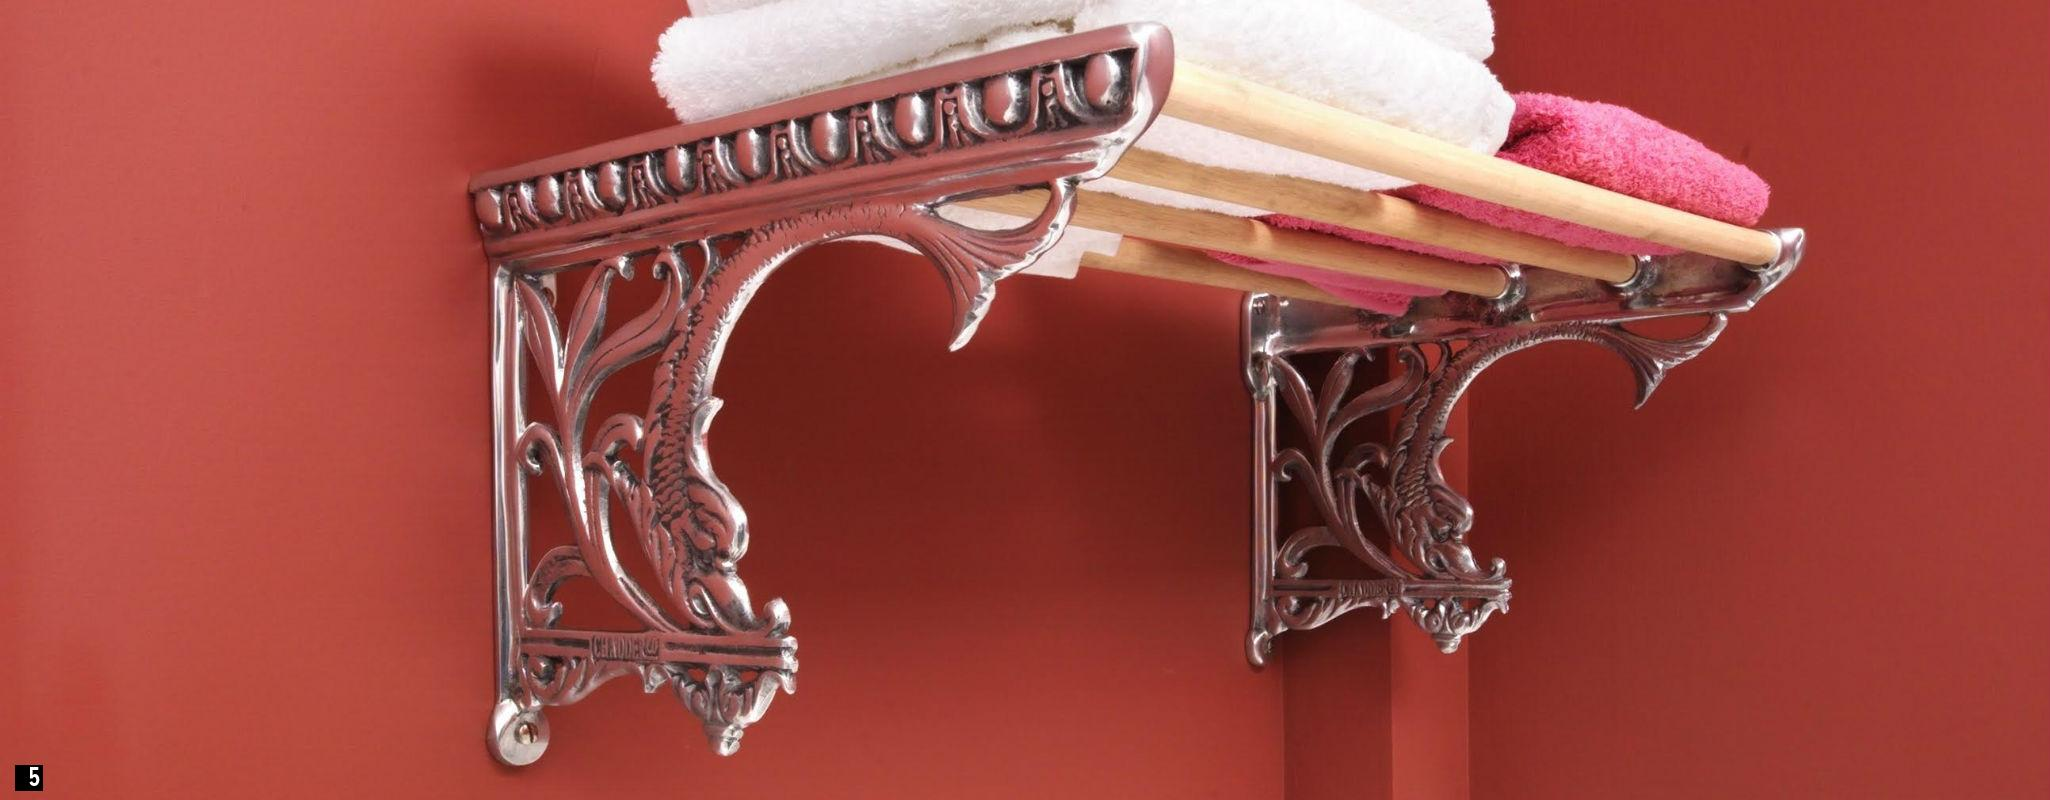 Traditional Towel Holder , Luxury Bathroom Accessories , Bespoke Cisterns, Bespoke Metal Cistern